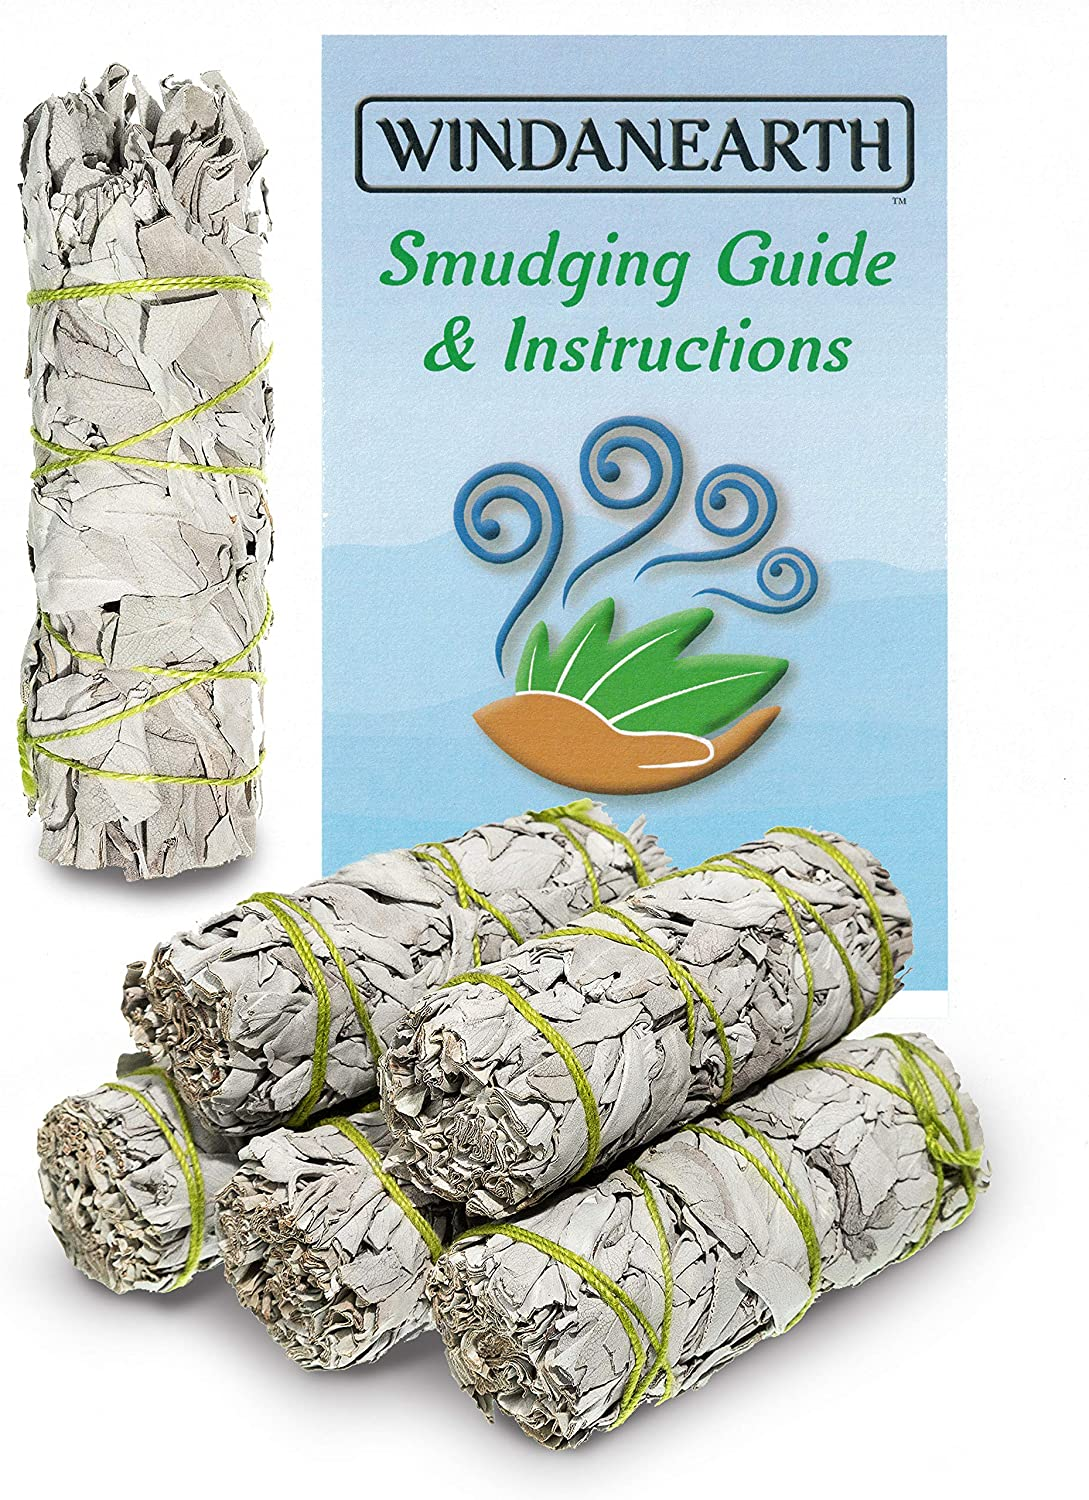 """Windanearth White Sage Smudge Sticks - 6 Pack 4"""" Inch California White Sage Incense Sticks for Cleansing. Sage Smudge Kit Replenishment. Sage Bundles Grown and Packaged in The USA."""